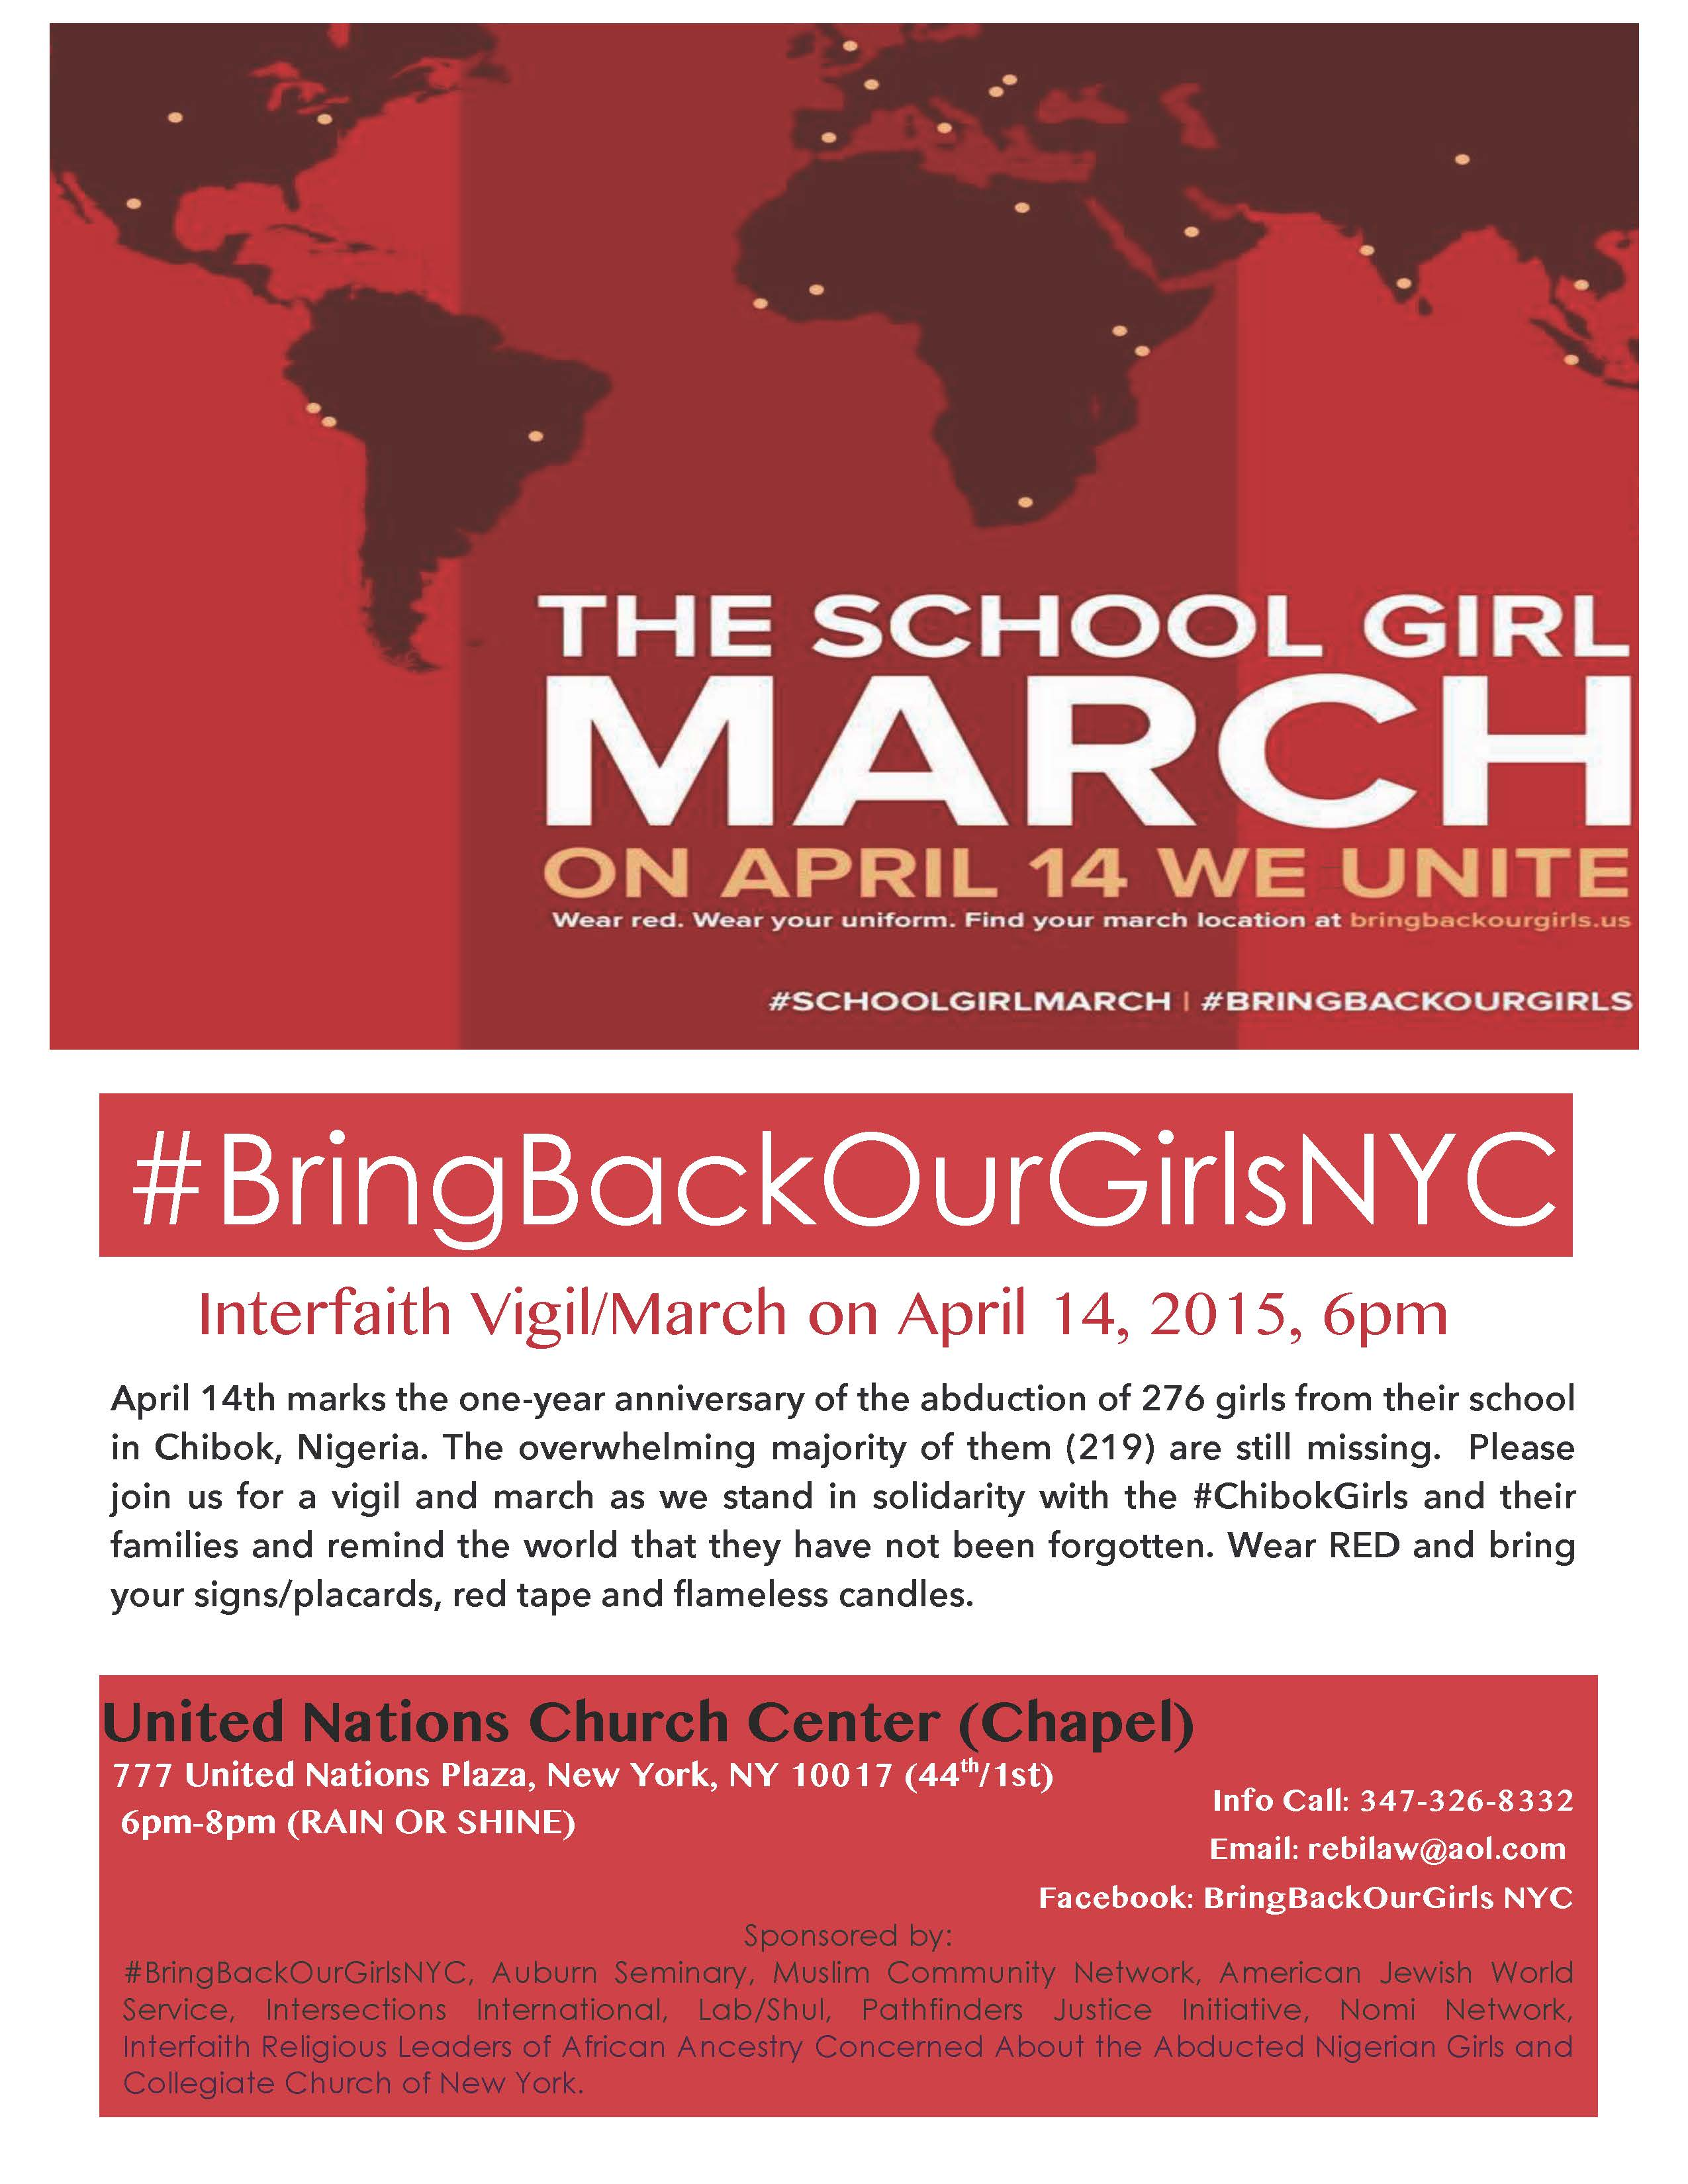 The School Girl March #BringBackOurGirls